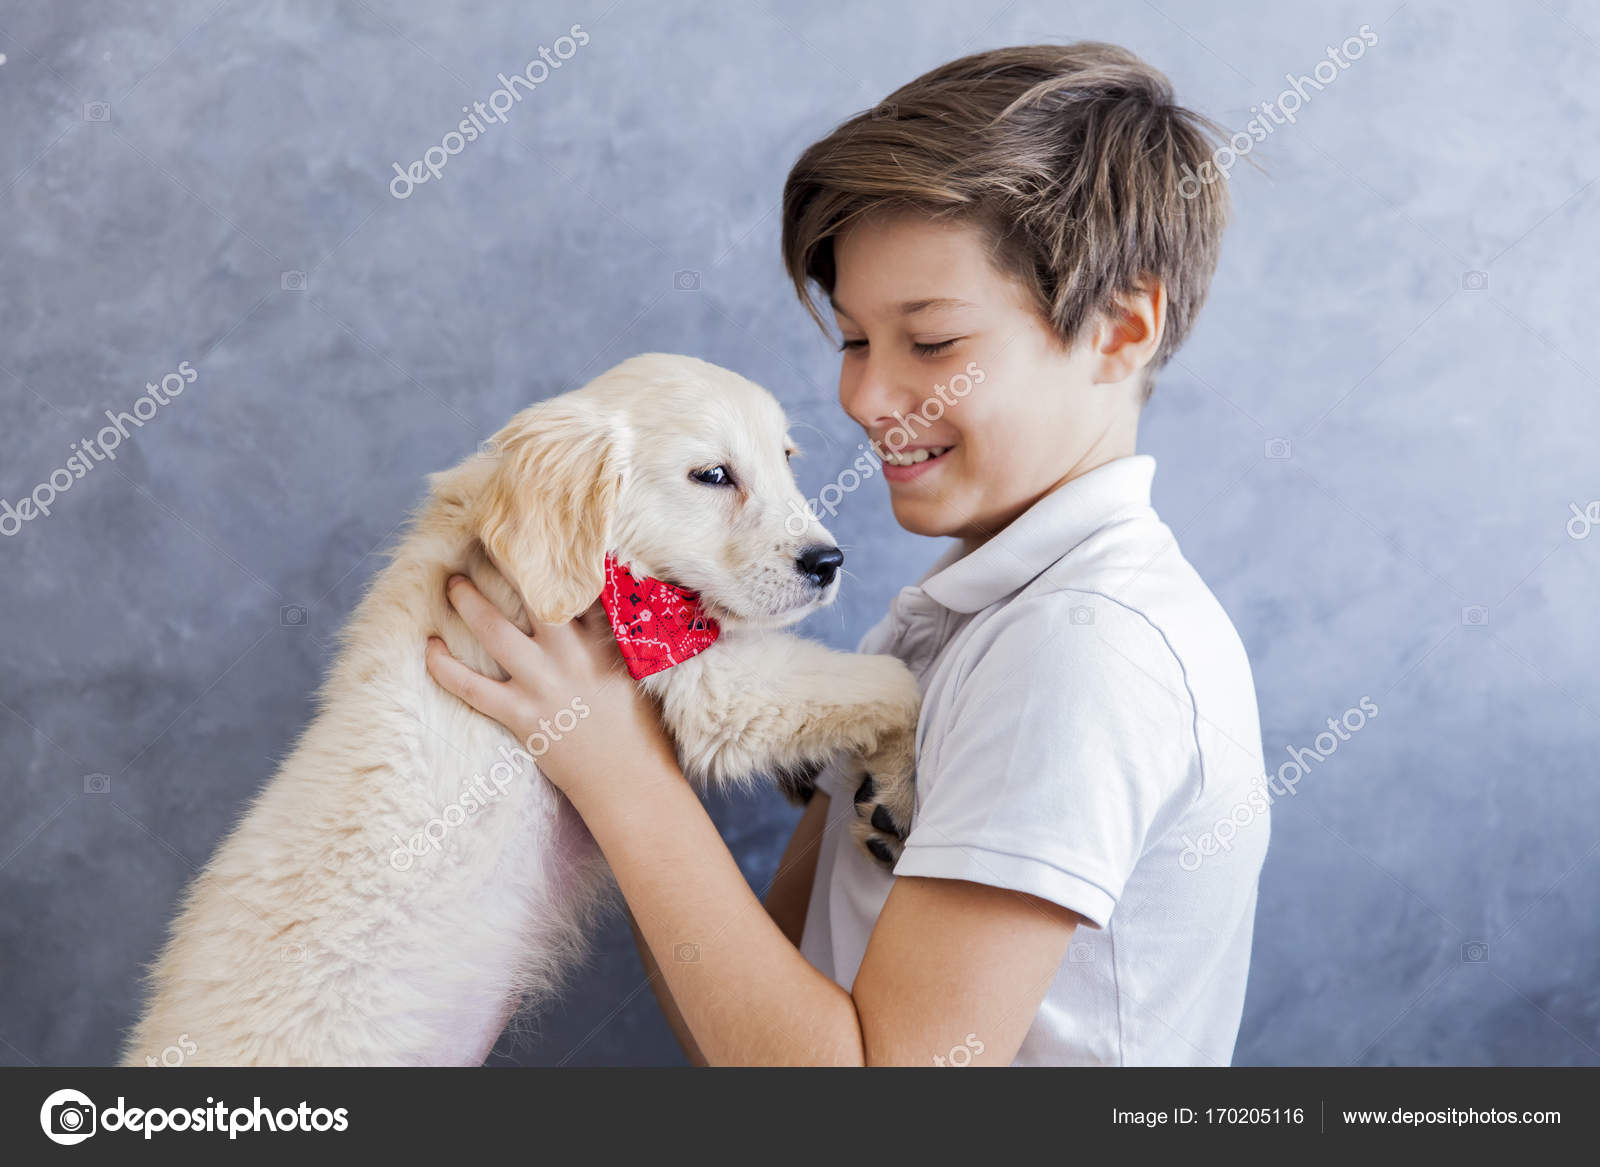 Cute teen boy with baby retriever dog in room– stock image